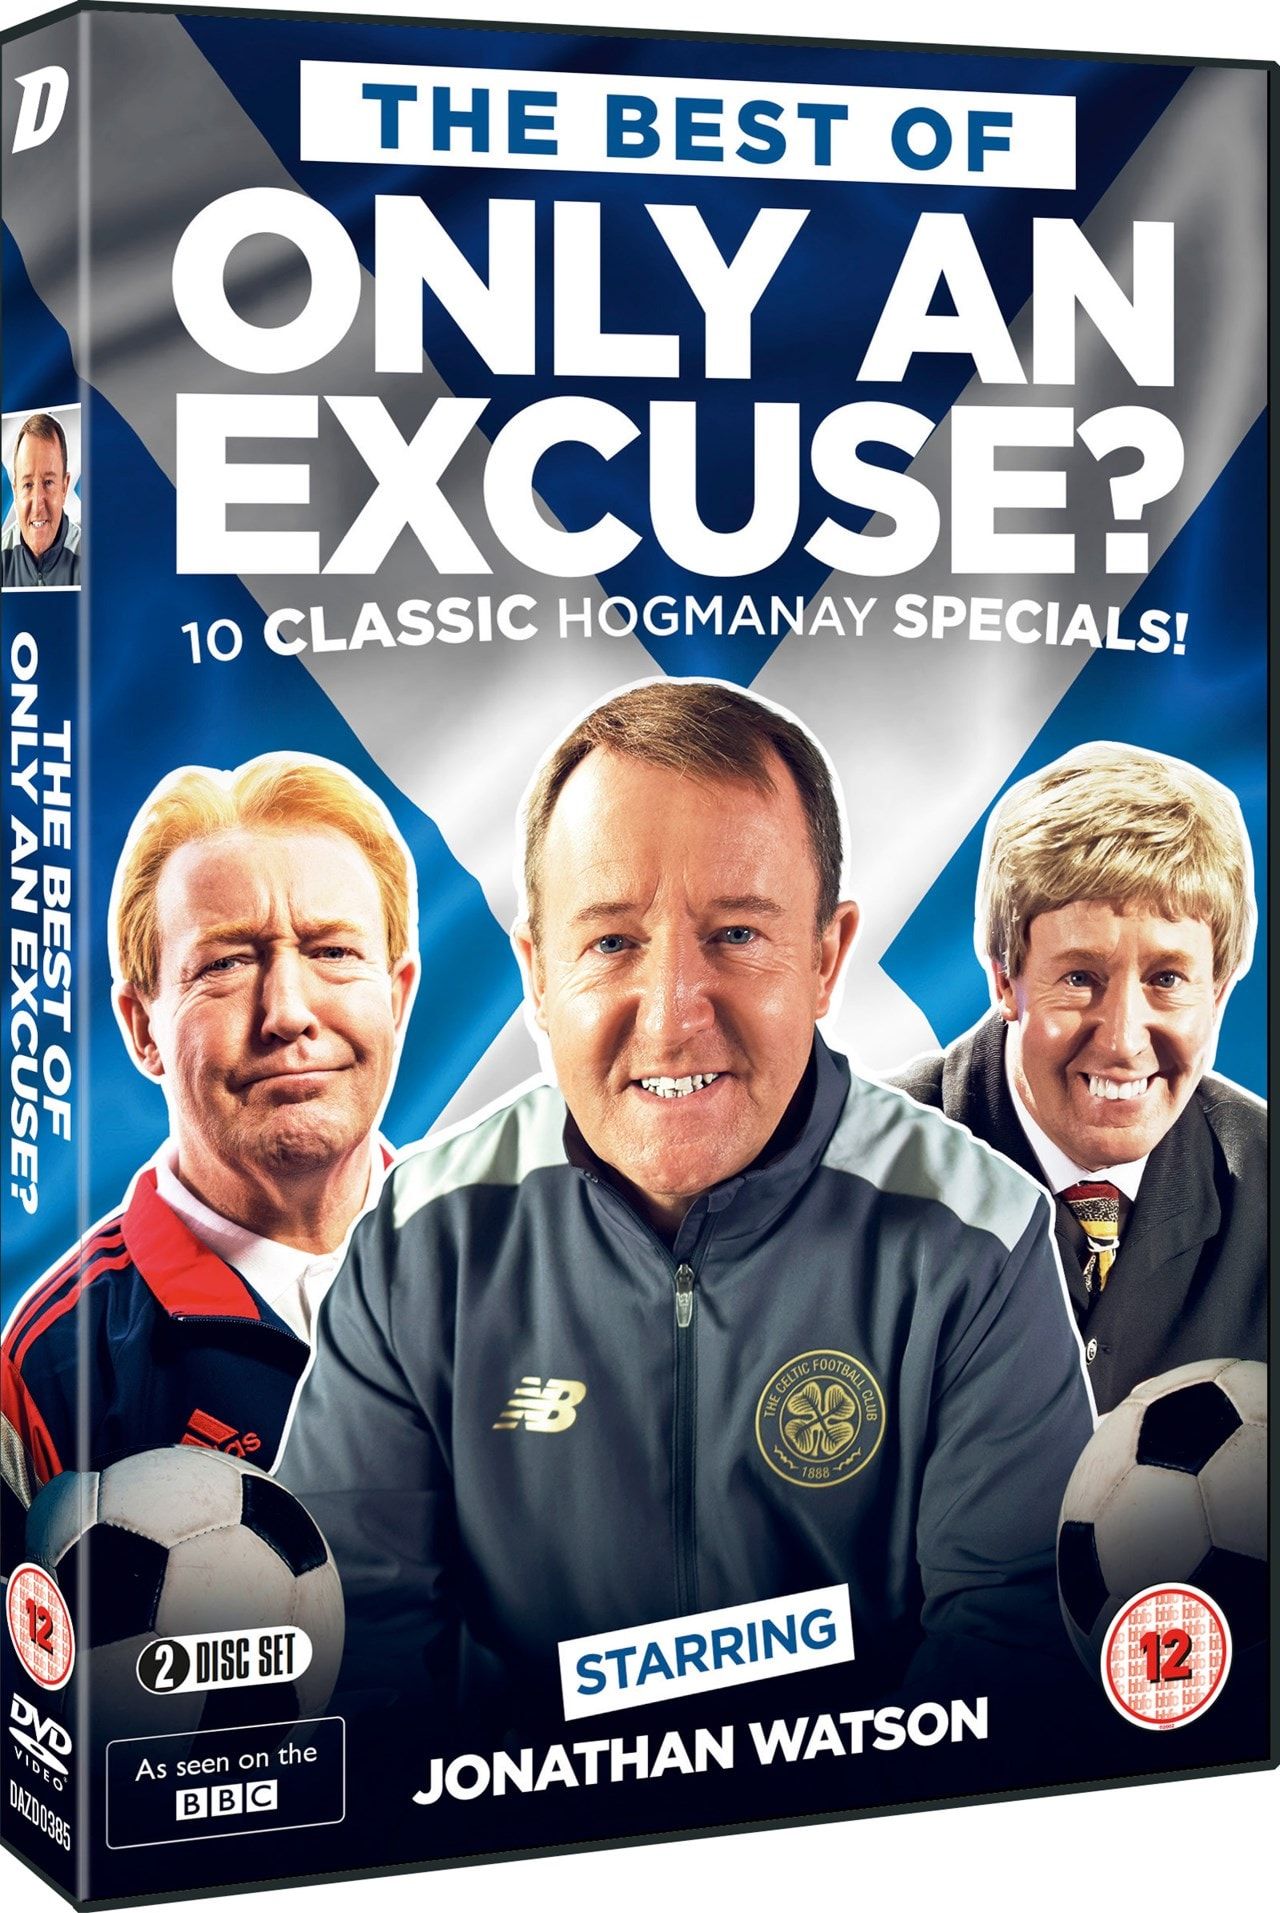 Only an Excuse?: The Best Of - 2